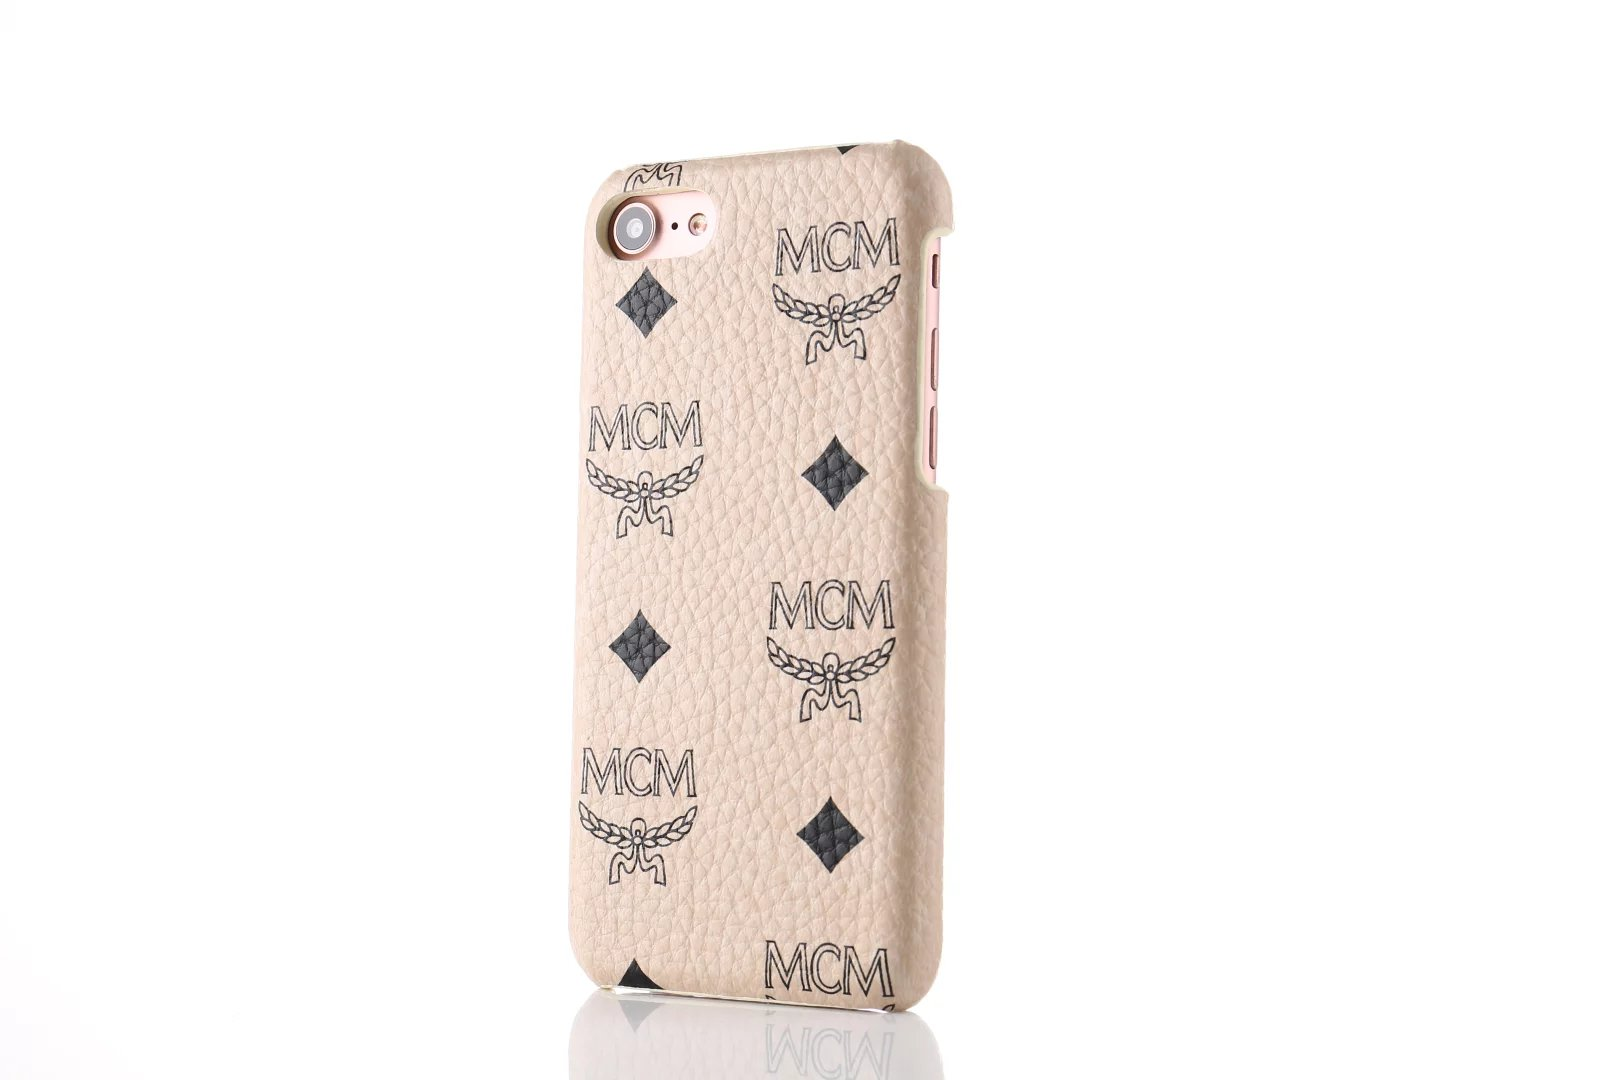 the best case for iphone 6s designer iphone cases 6s fashion iphone6s case iphone6s phone cases iphone 6s nice cases iphone 6s personalized cases how to clear iphone iphone 6s case brands iphone case skin